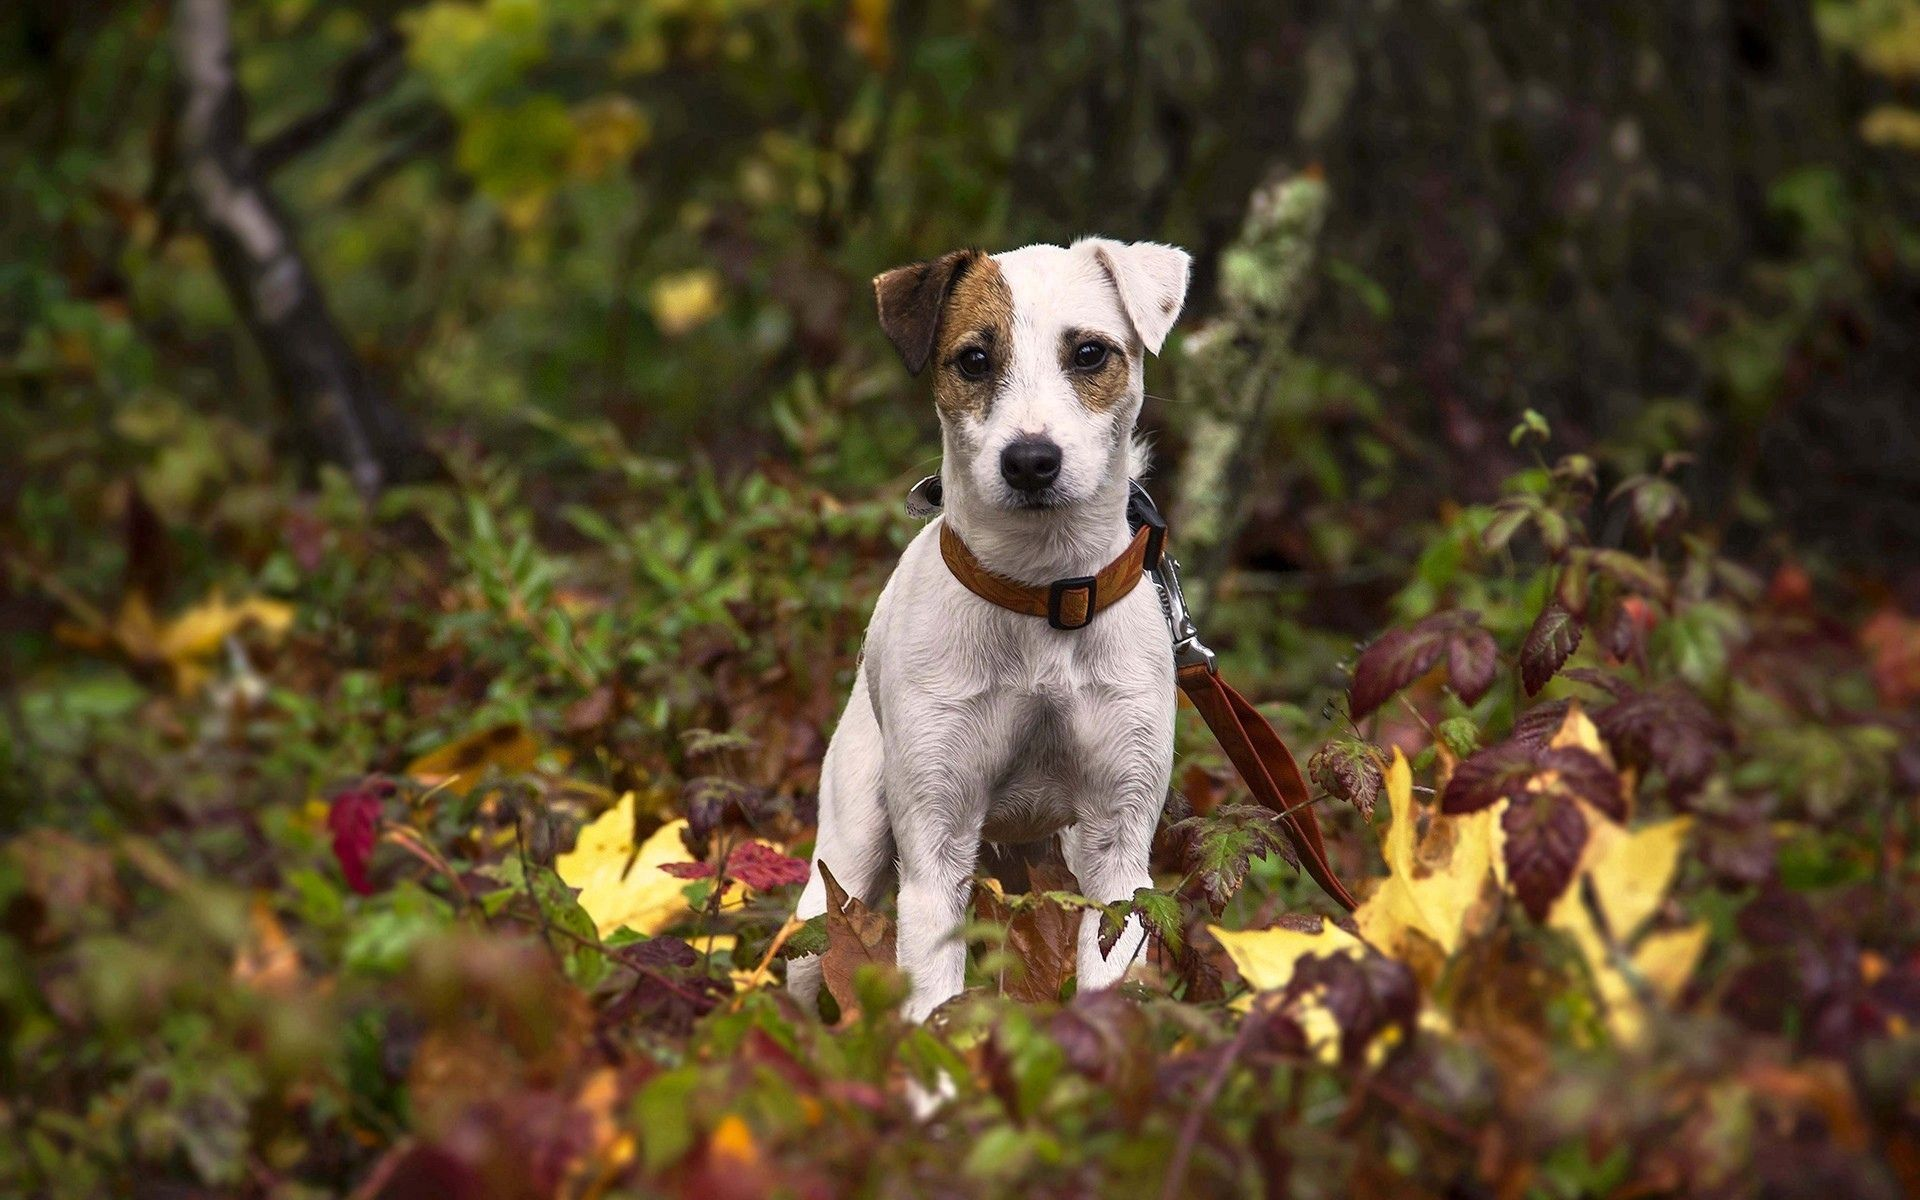 112598 download wallpaper Animals, Dog, Puppy, Grass, Leaves screensavers and pictures for free